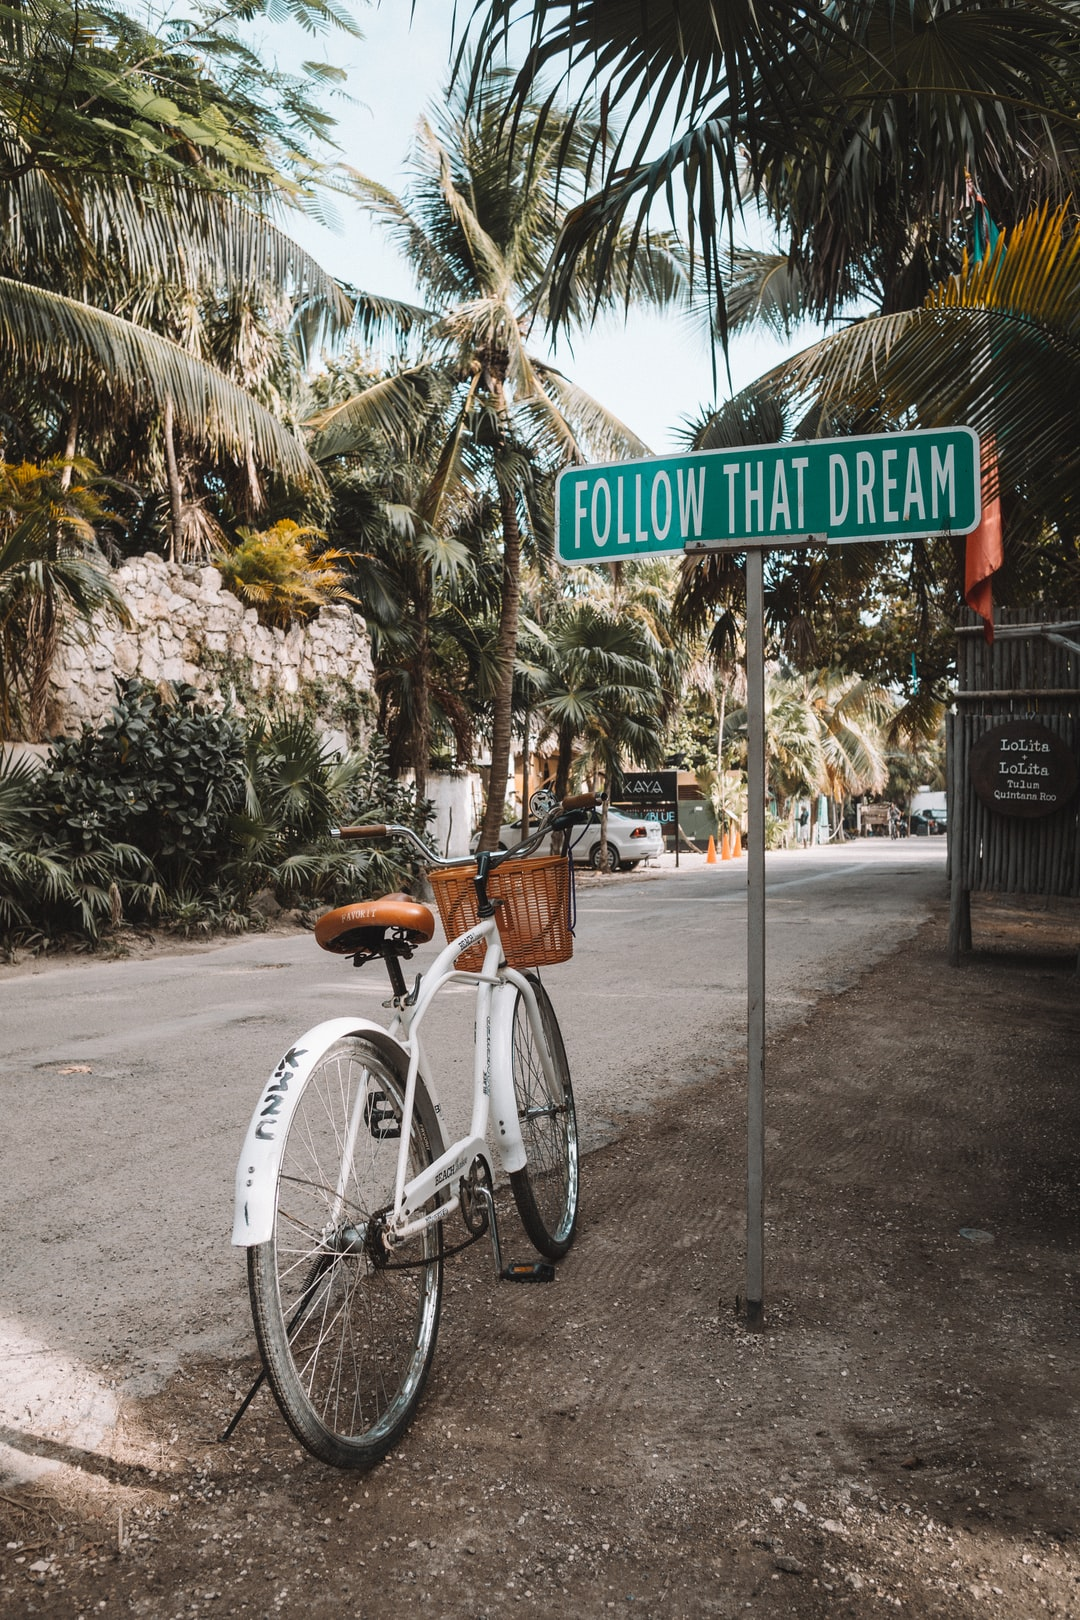 Follow that dream in Tulum Mexico